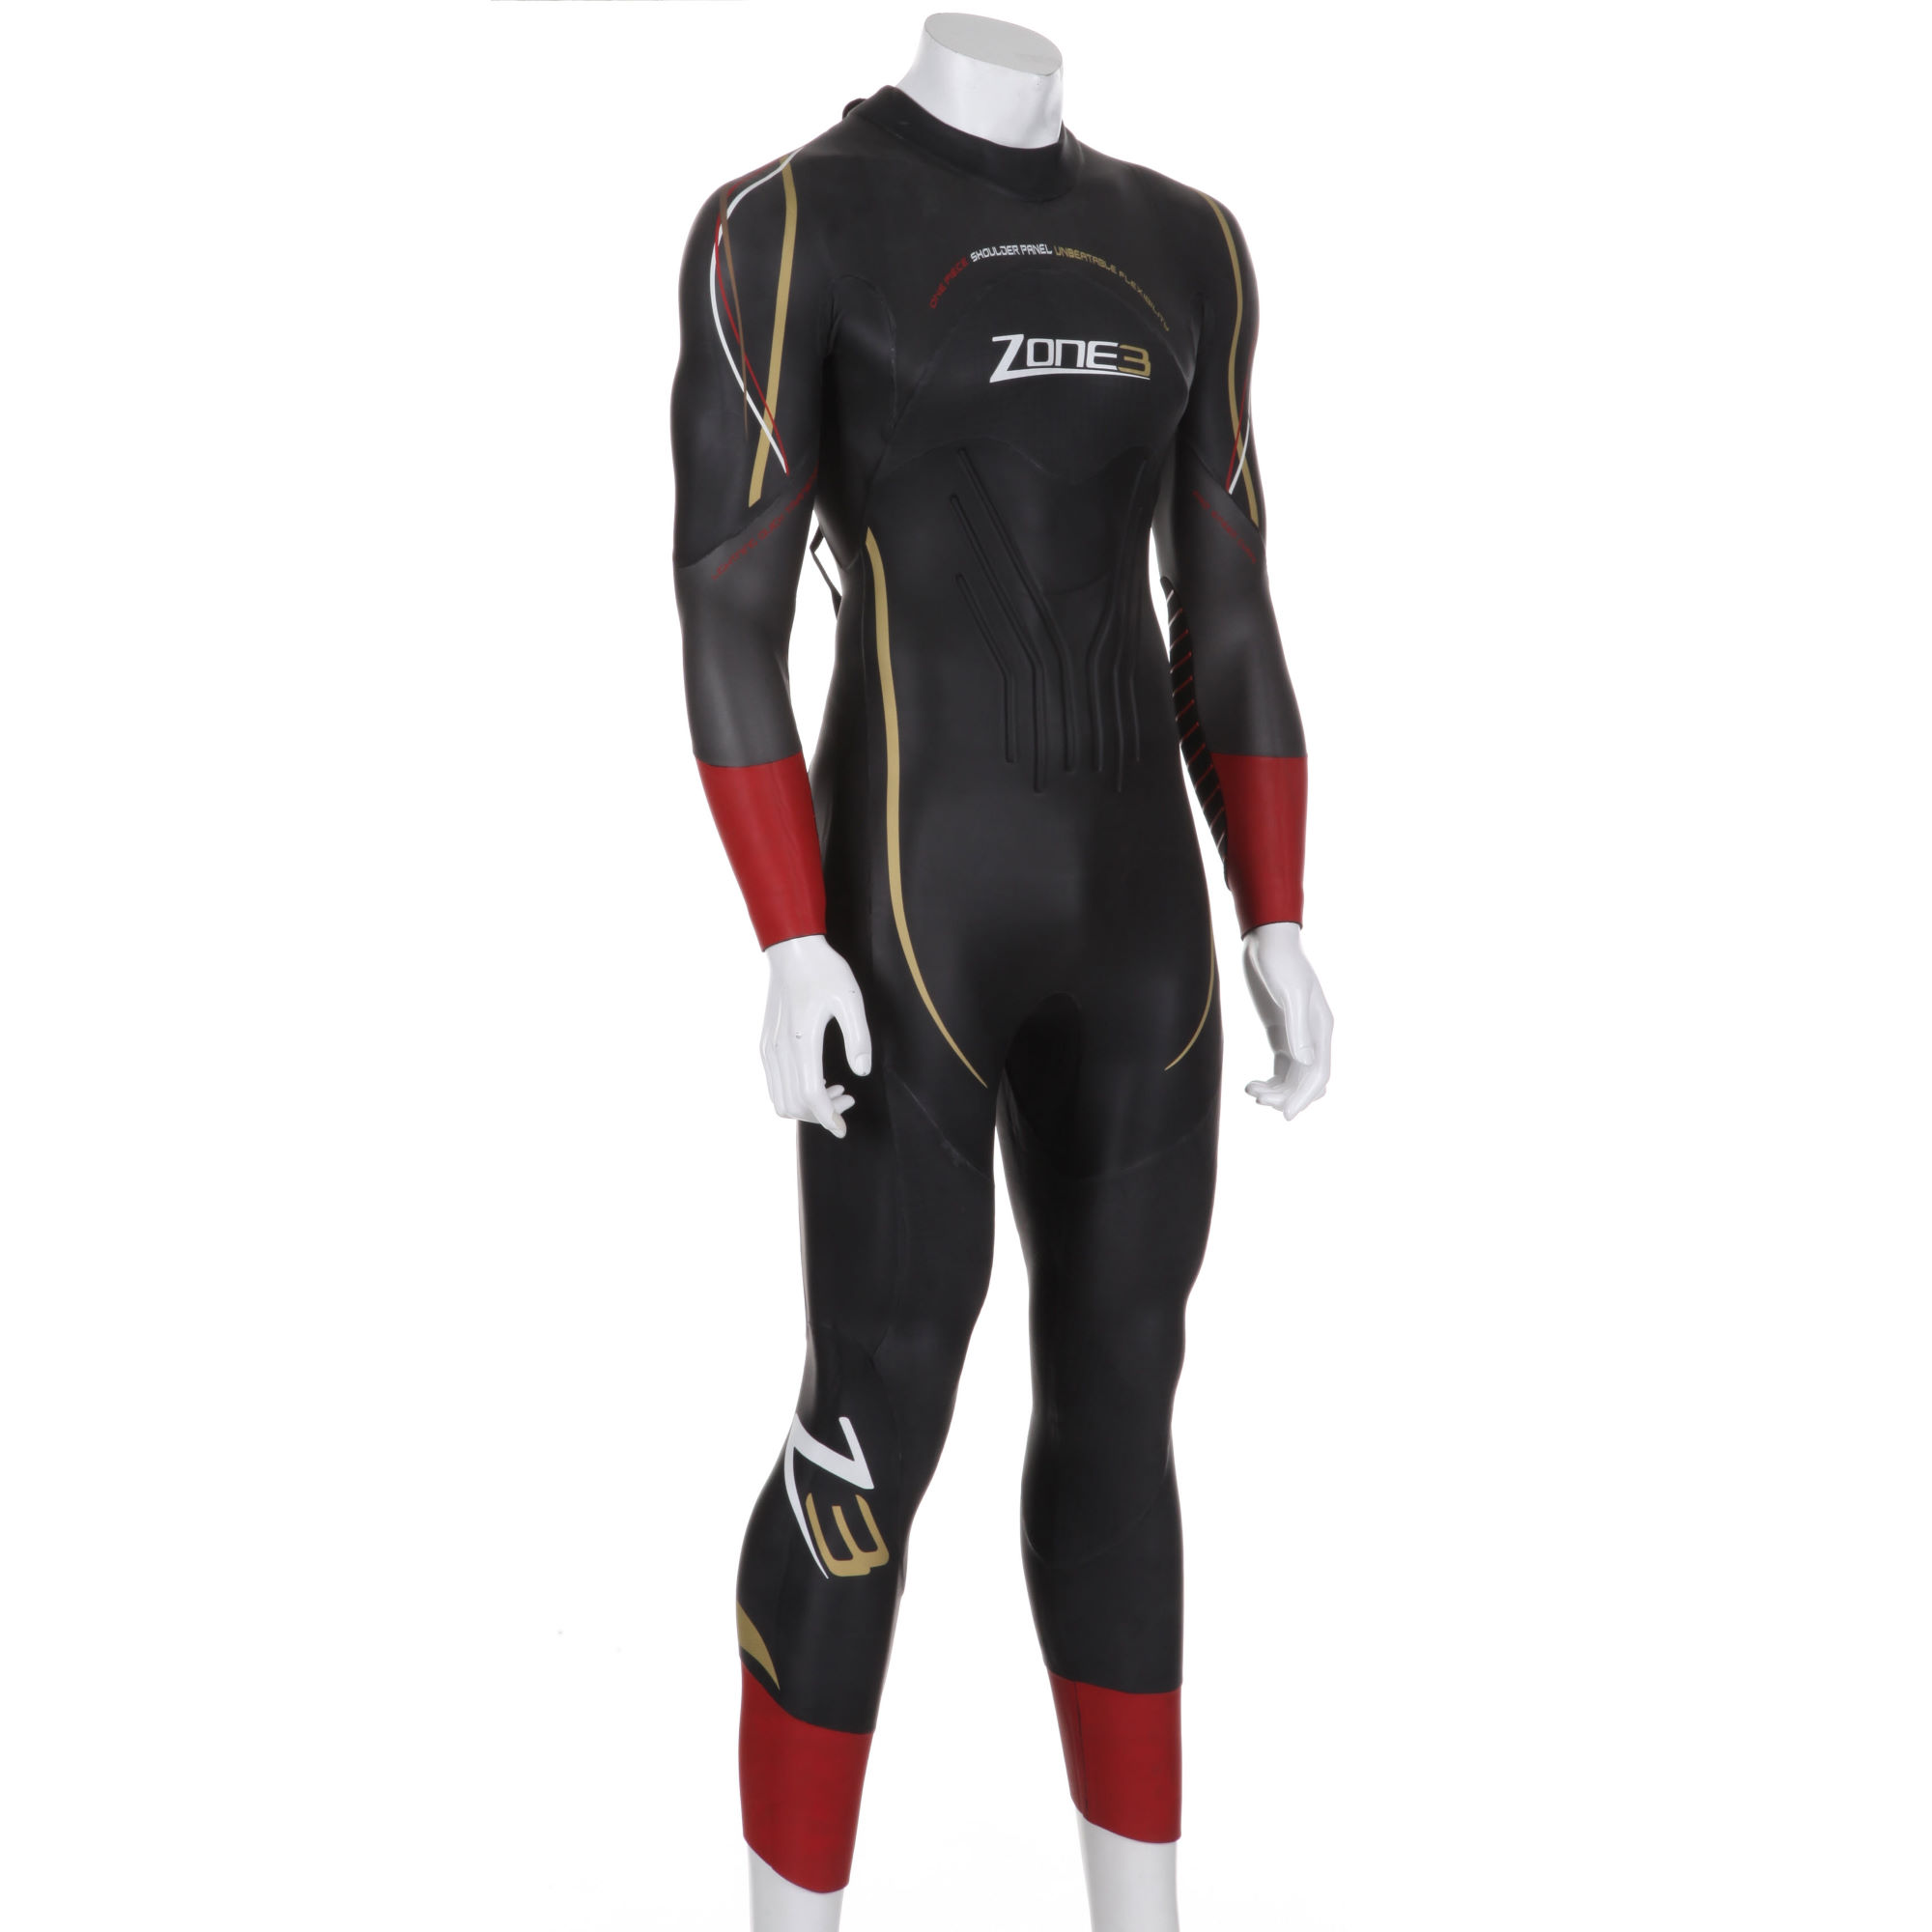 zone 3 wetsuit size guide